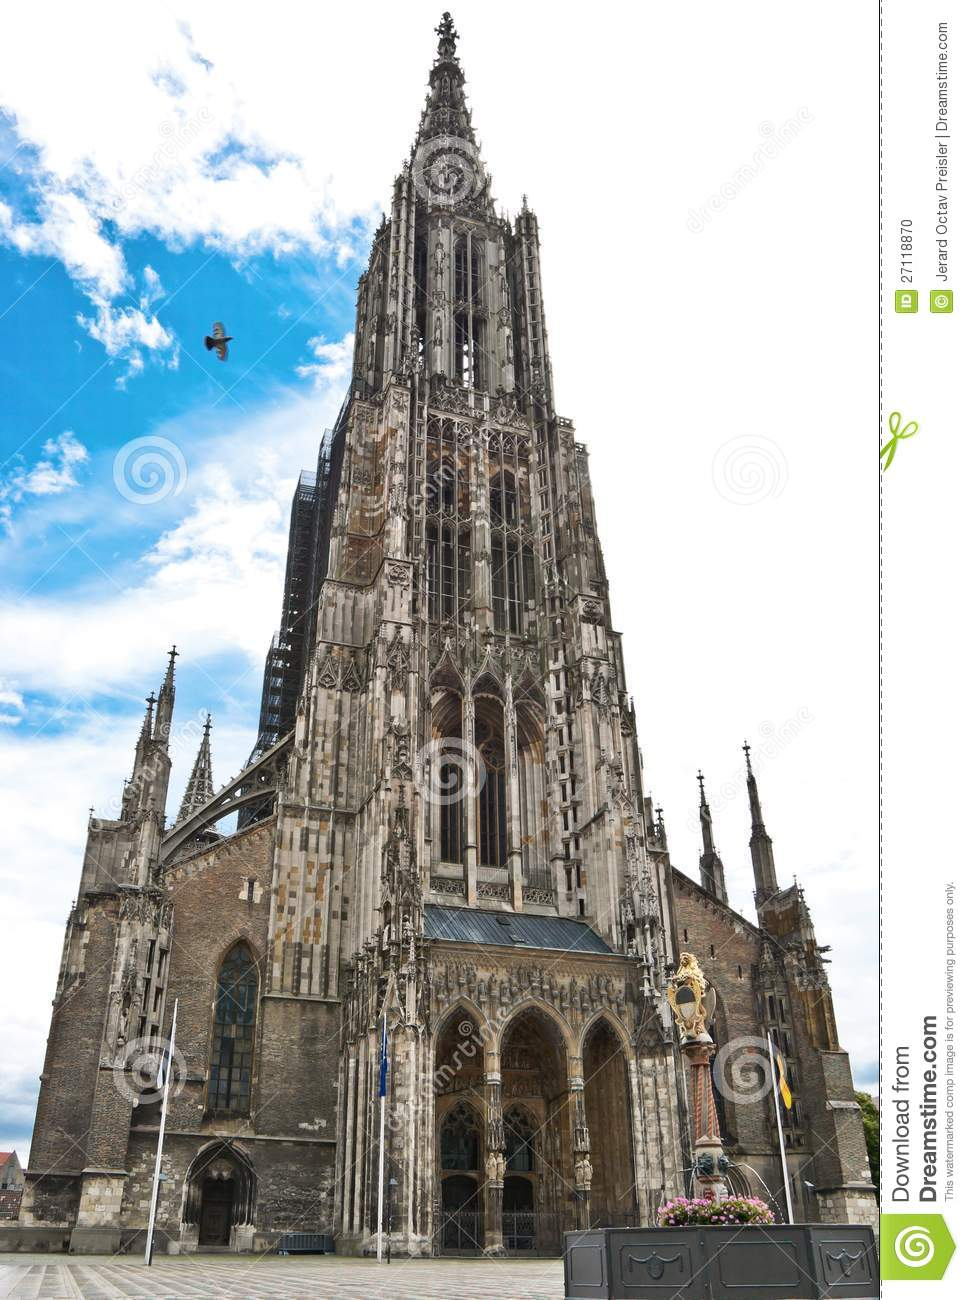 Ulm Minster (German: Ulmer Munster) is a Lutheran church located in ...